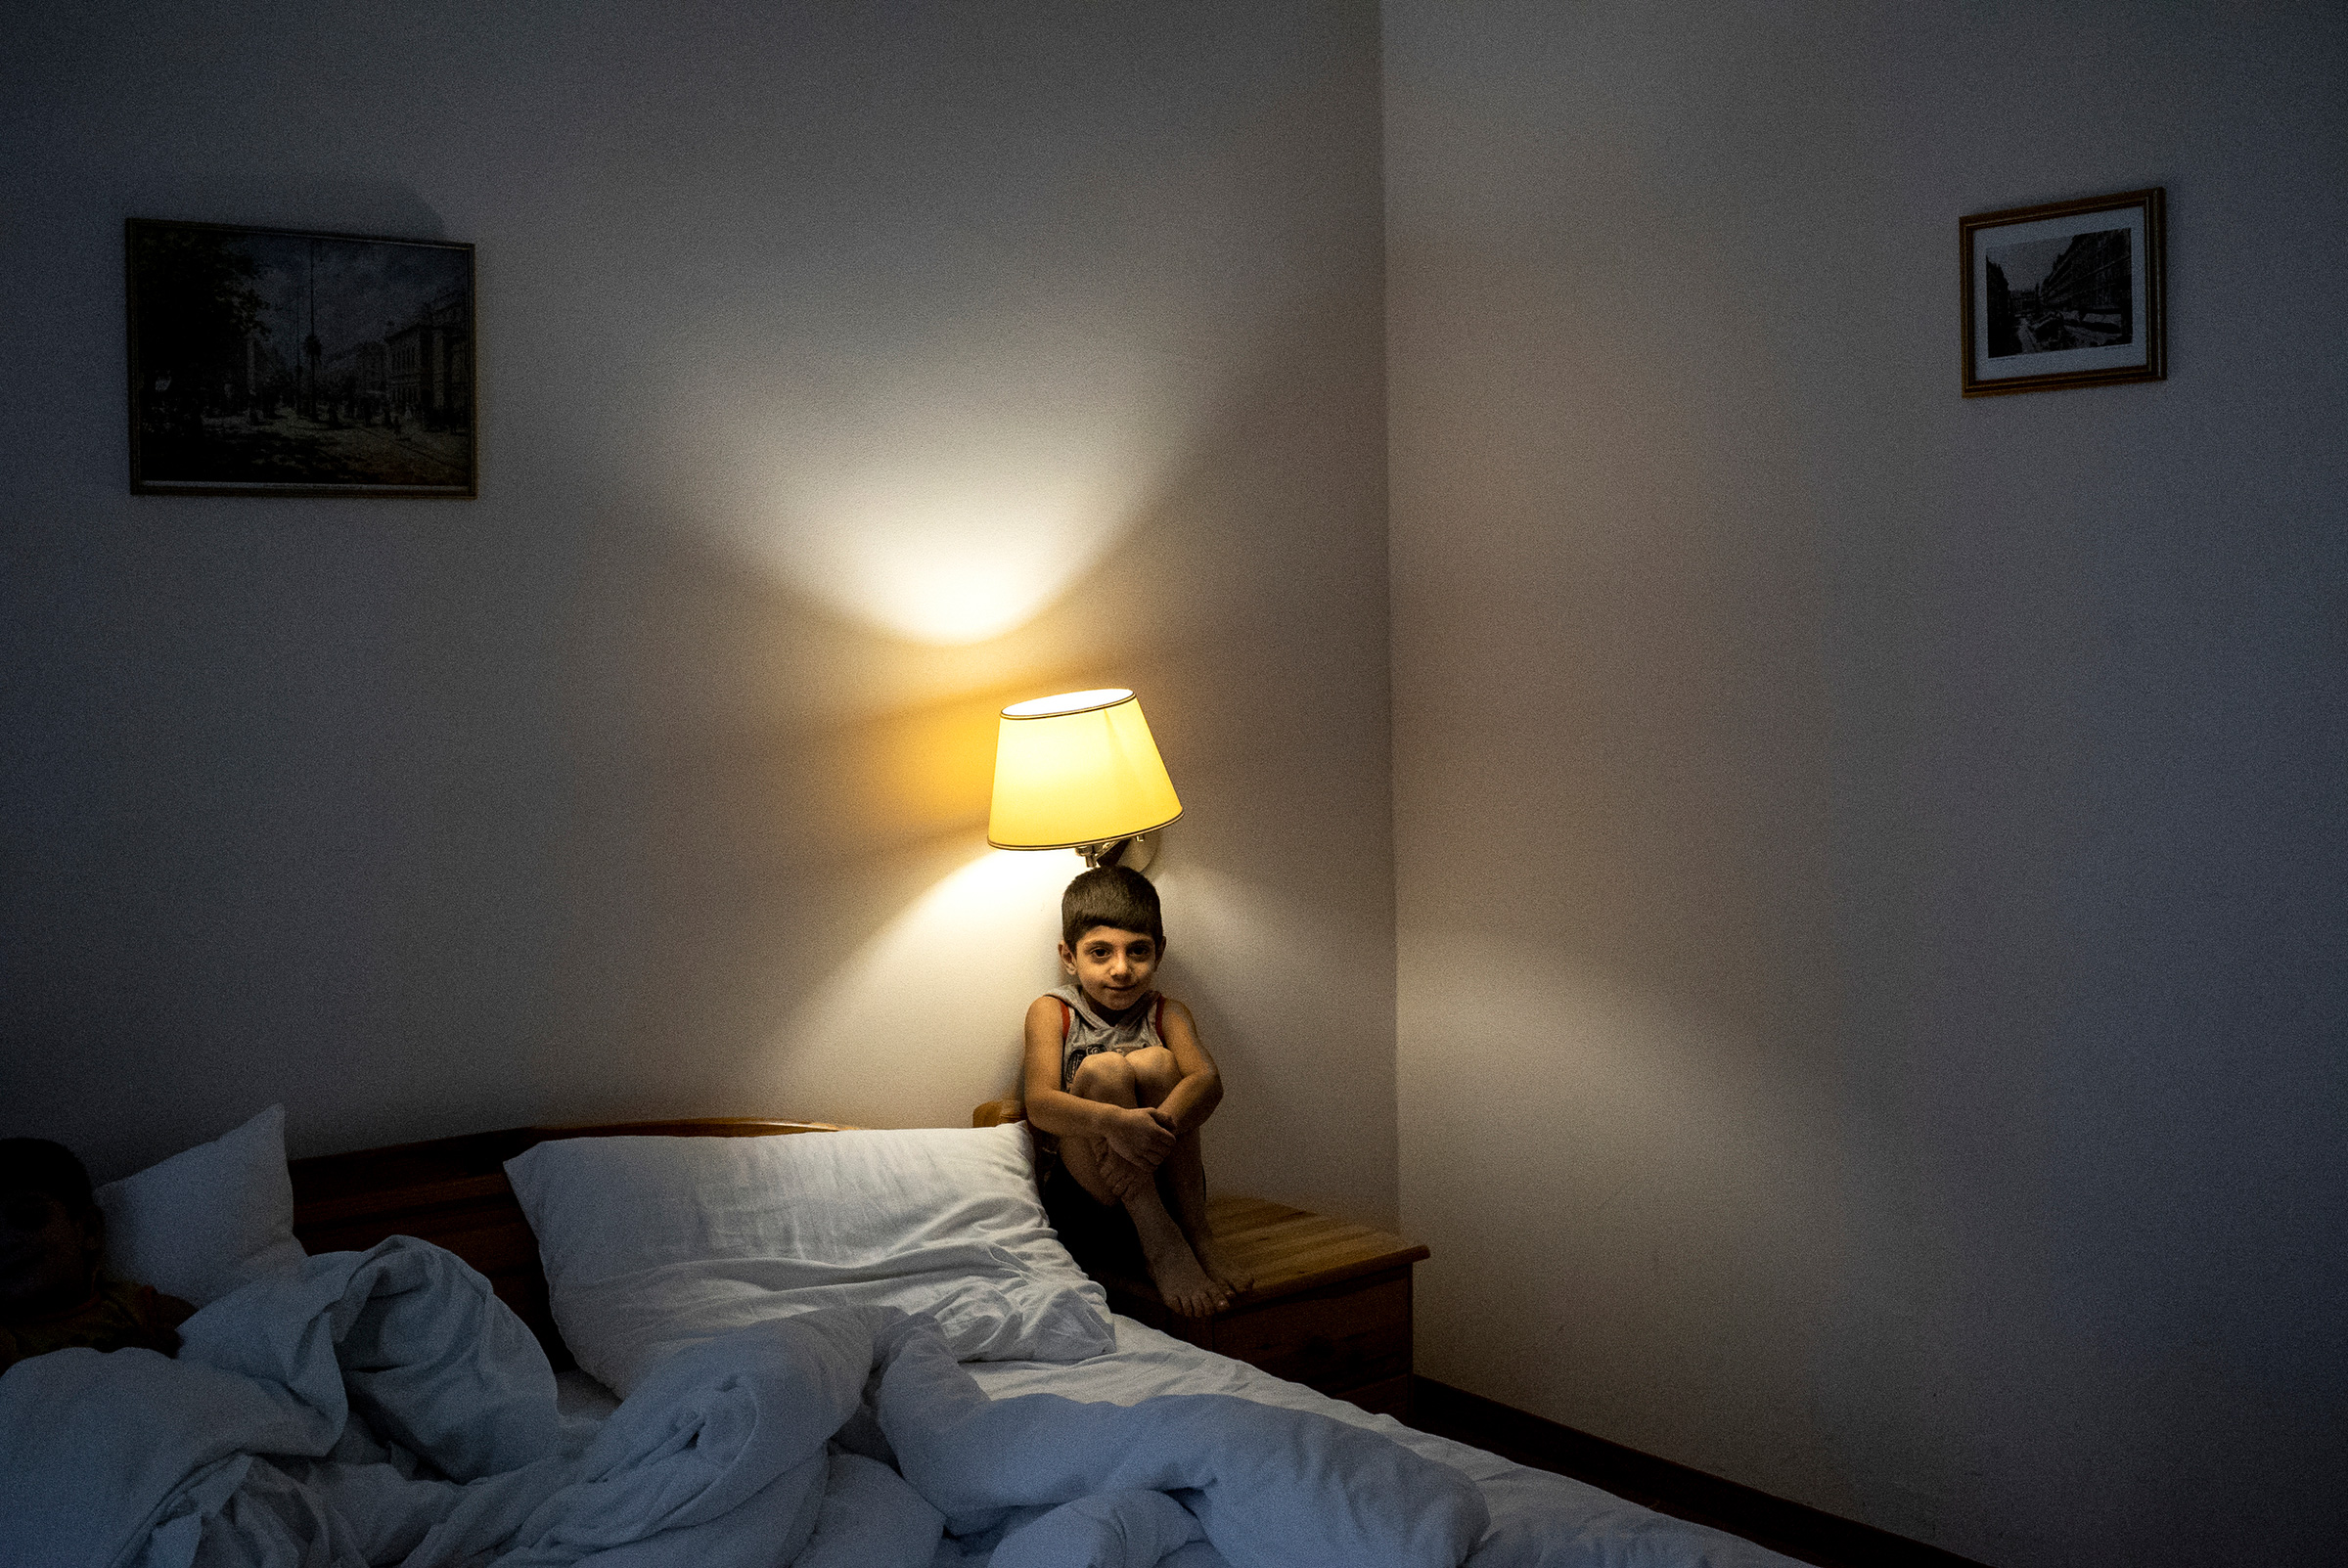 Ali, a Syrian refugee who arrived that evening in Vienna with his family after weeks on the refugee trail. The next day they continued their journey to a new life in Sweden. Vienna, 2015.